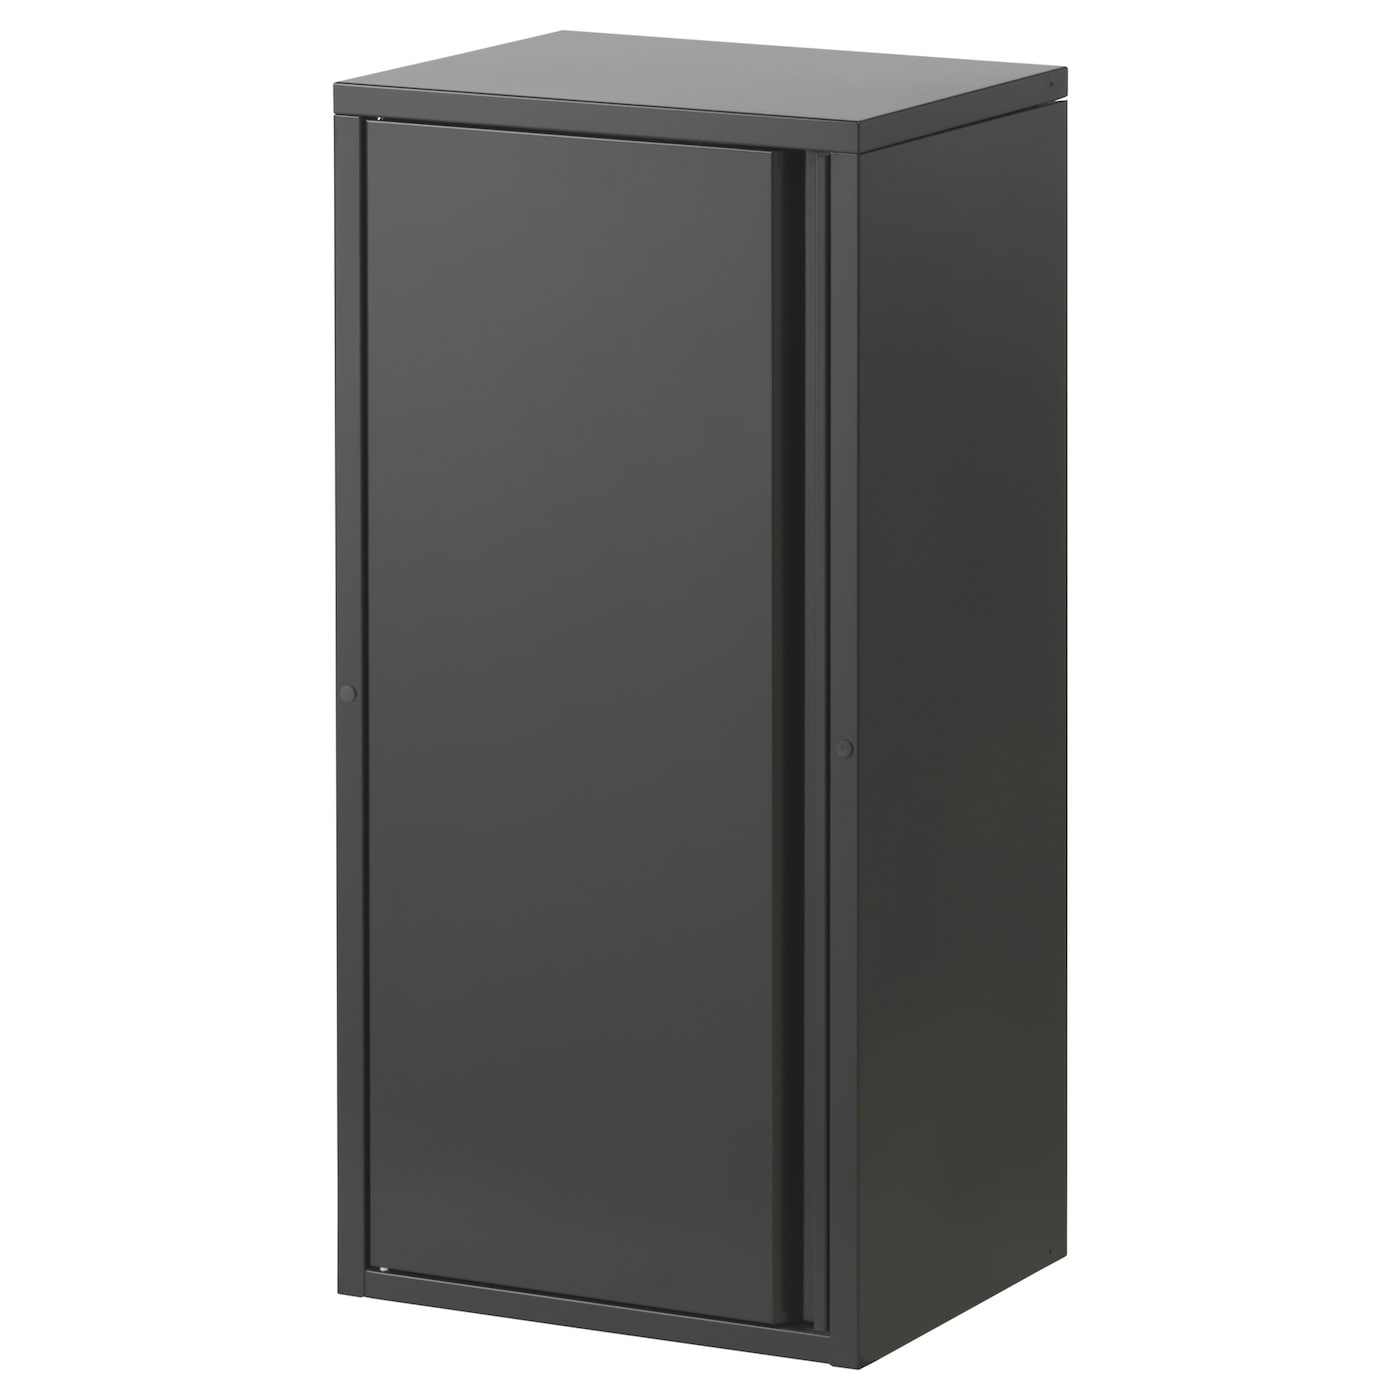 for black add en desk hemnes unit products on ikea us shed sheds catalog brown